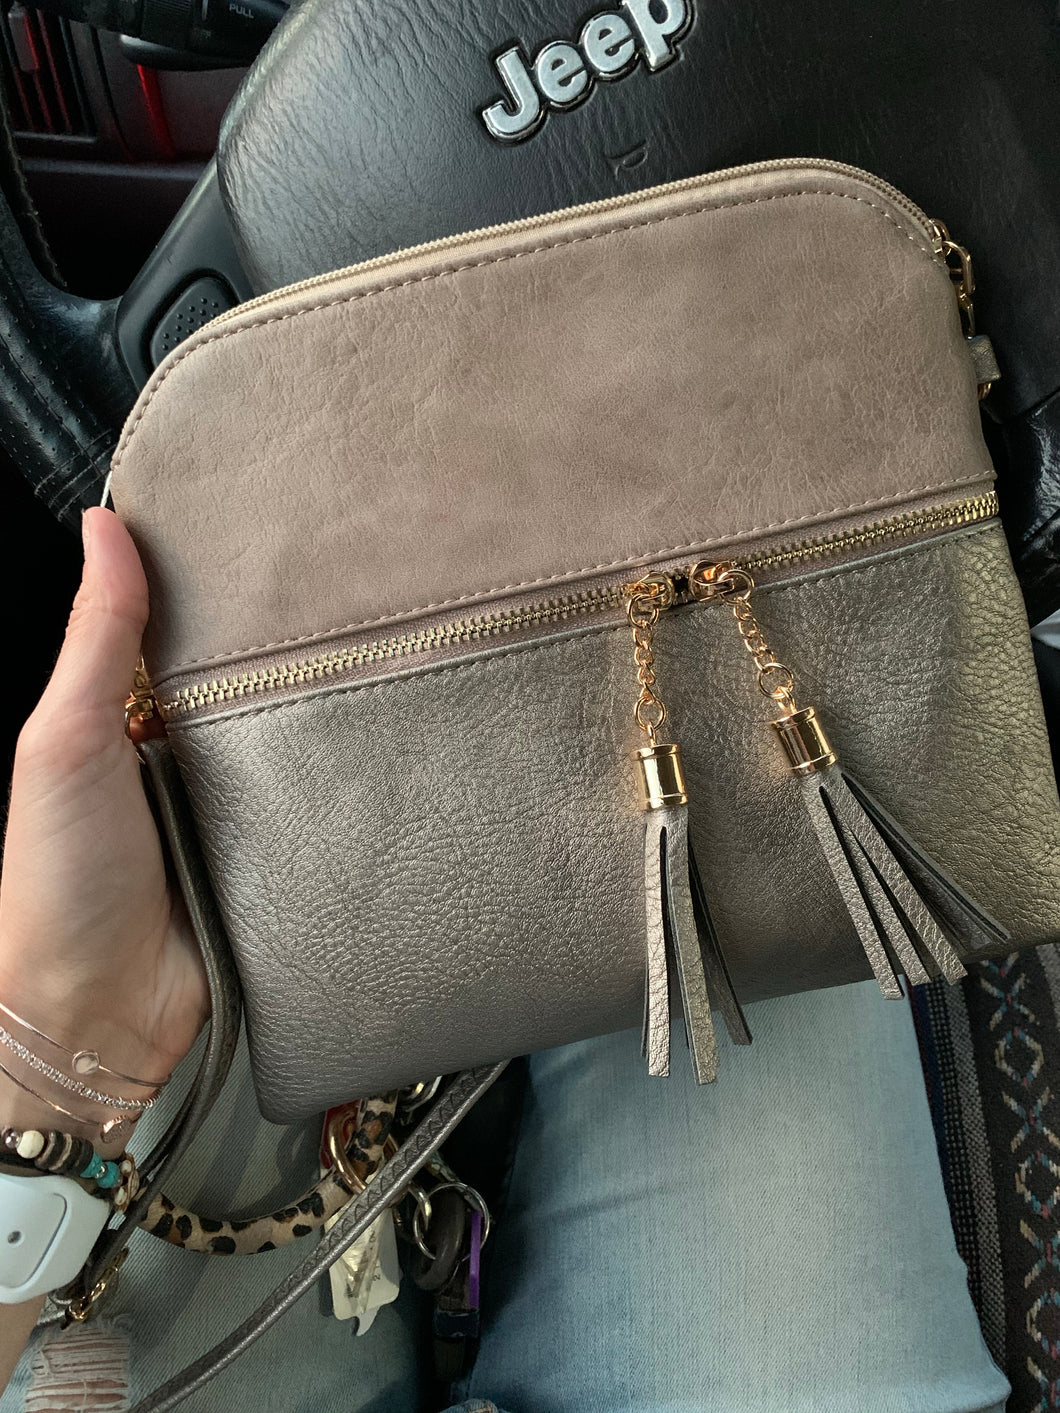 Tara Tassel Vegan Leather Crossbody Bag - Pewter/Stone